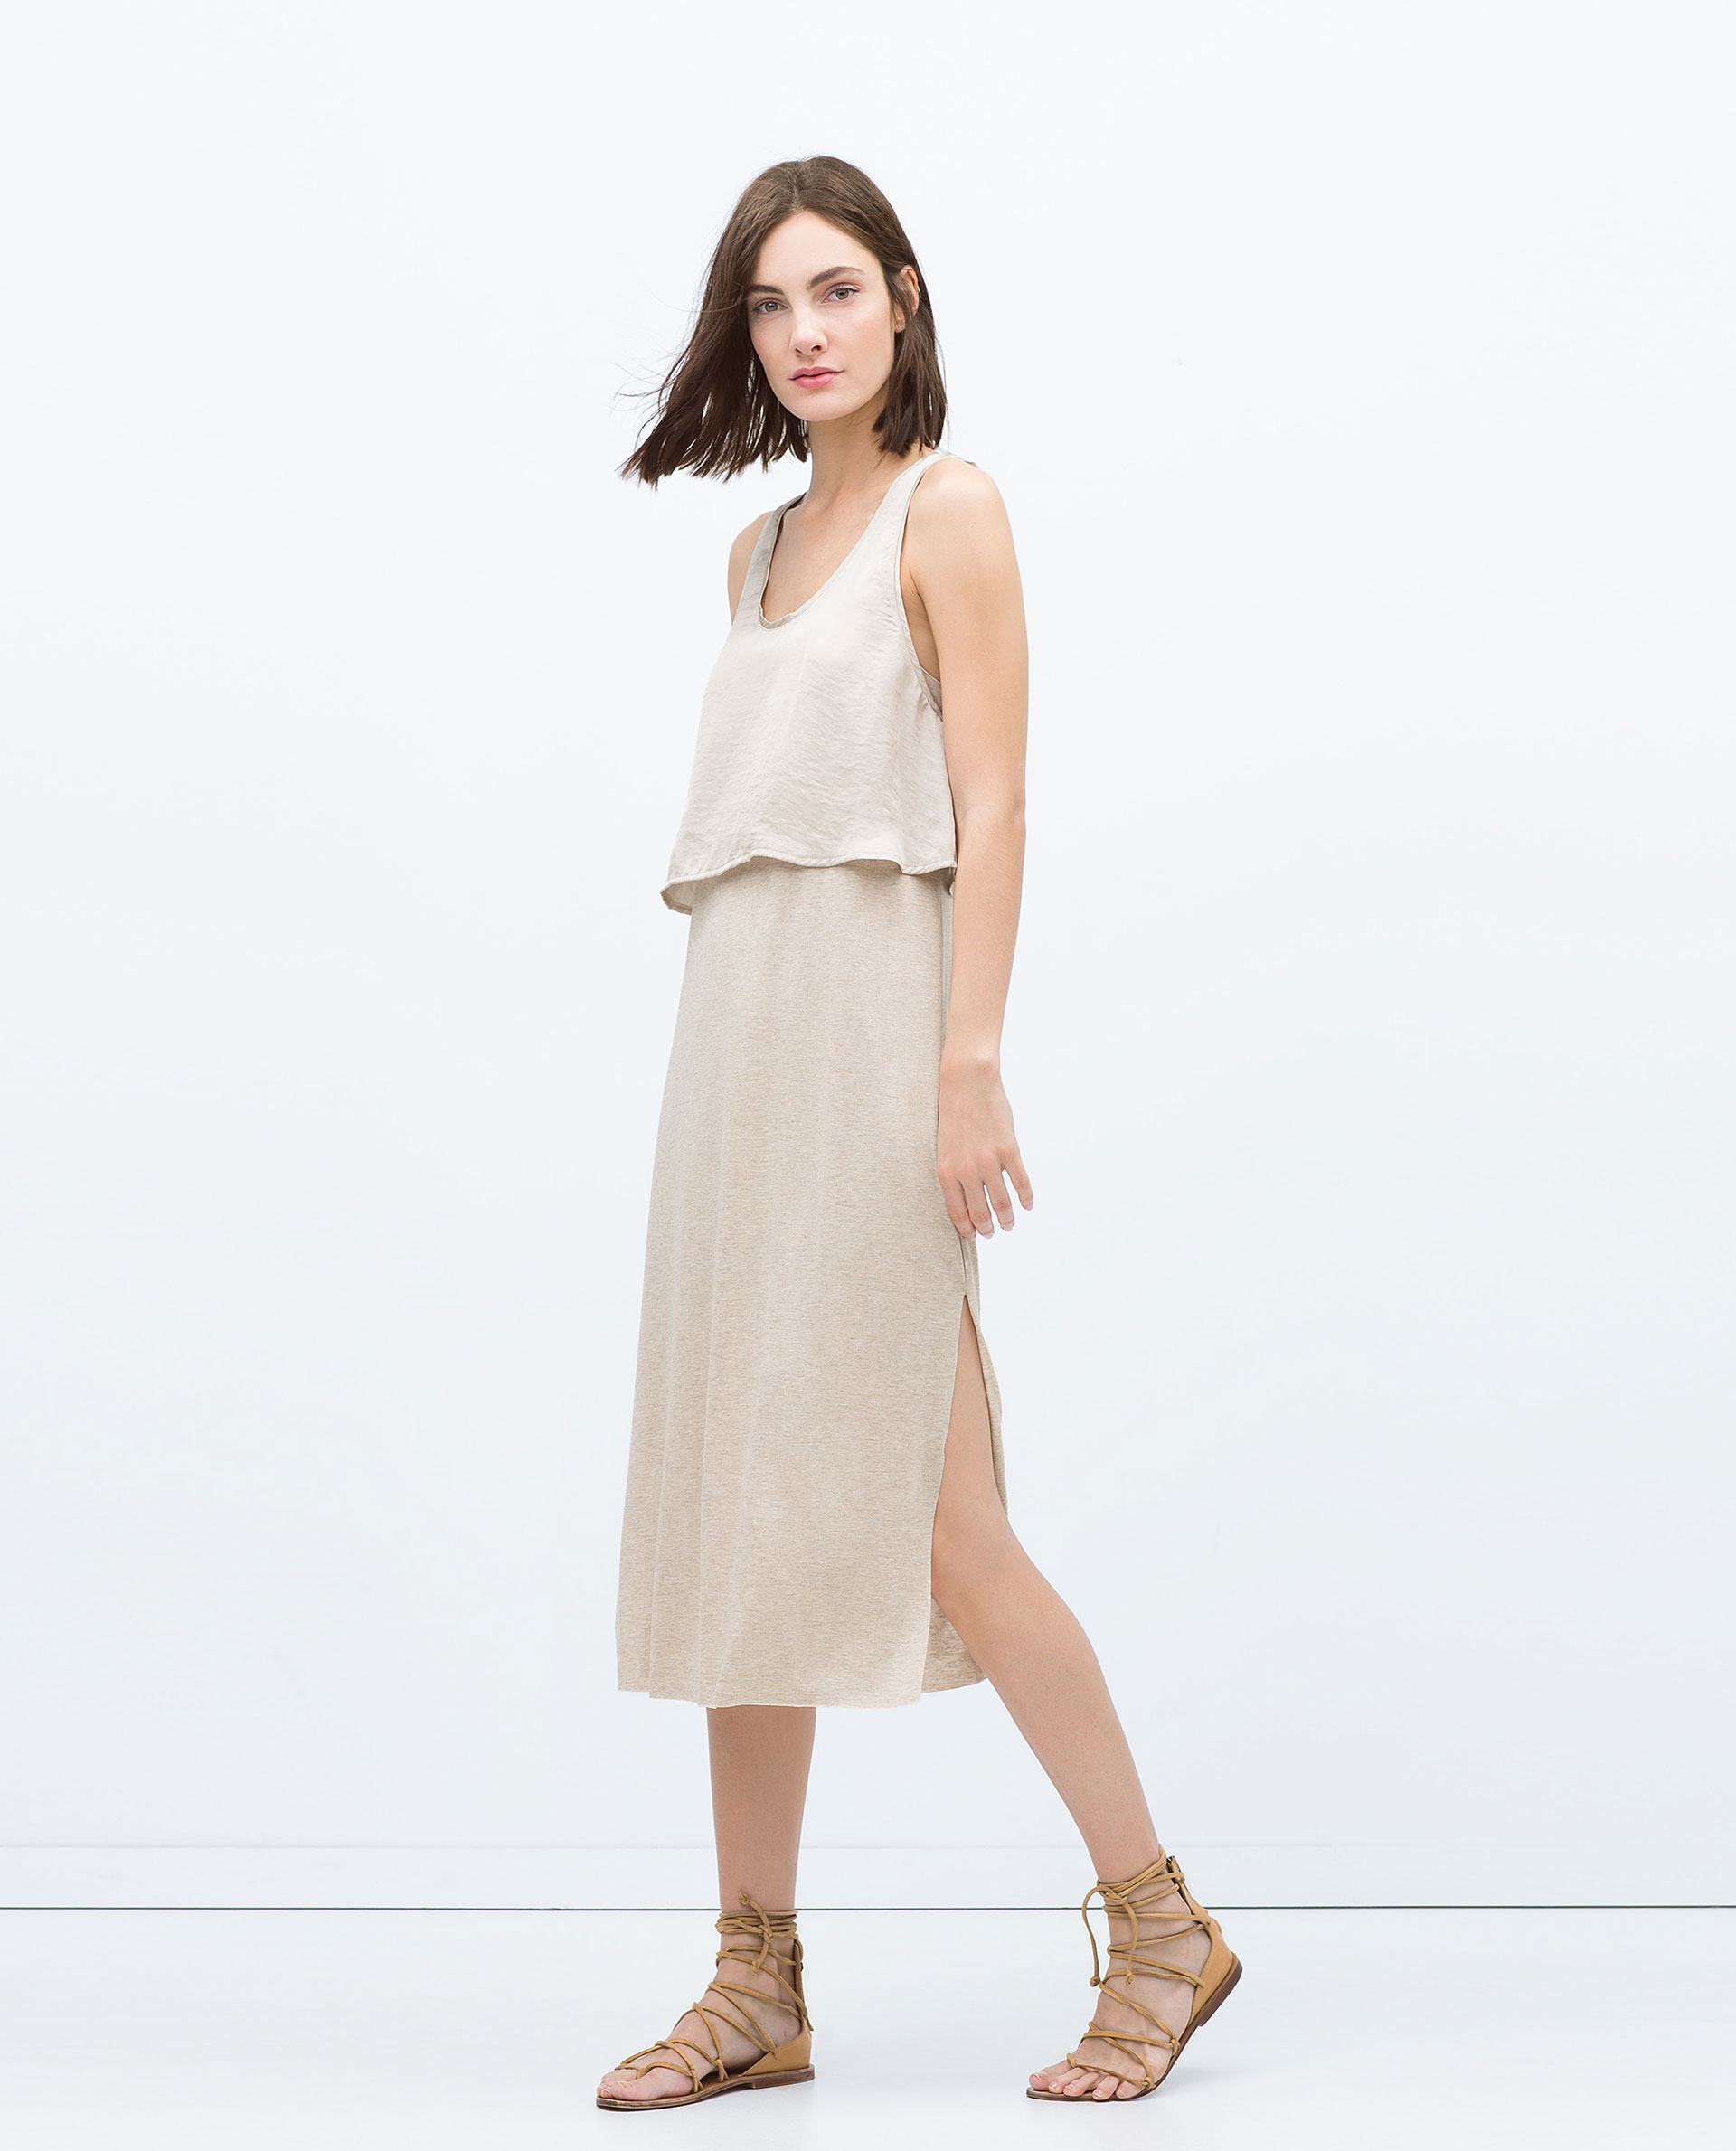 Zara Long Double Layer Dress In Beige Sand Marl Lyst